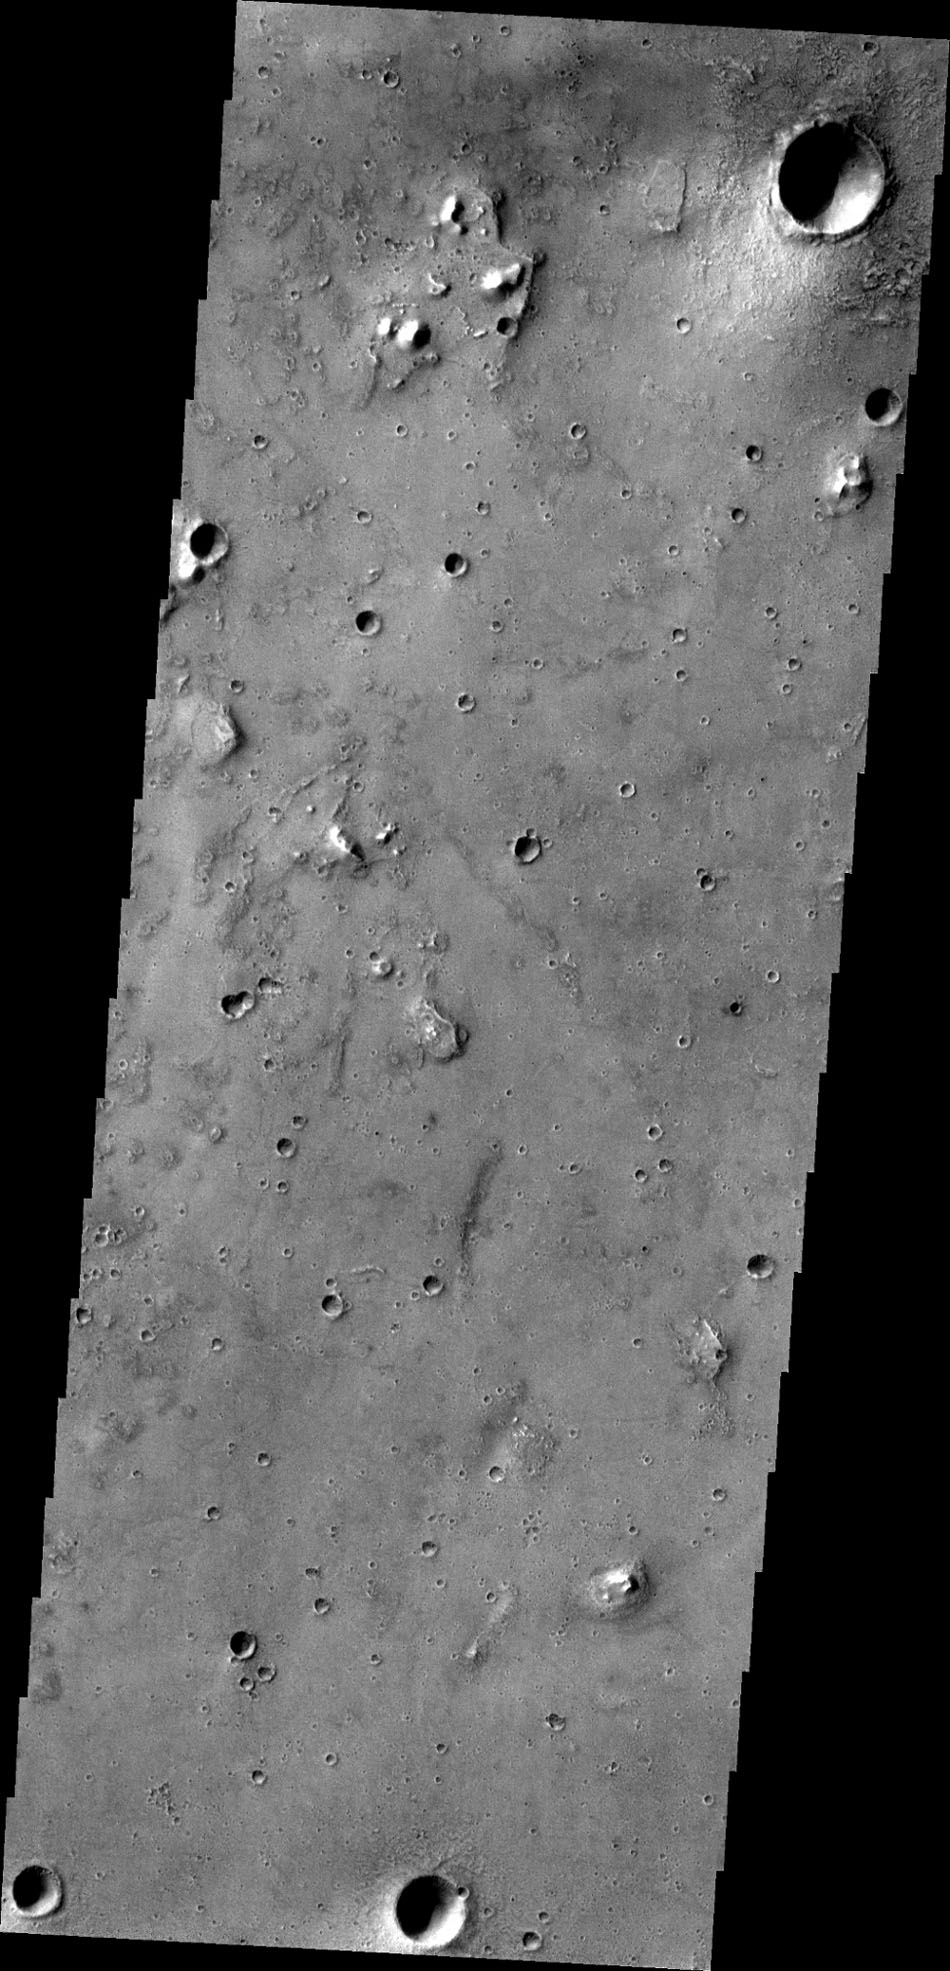 This image captured by NASA's 2001 Mars Odyssey spacecraft shows a small portion of Acidalia Planitia, a largely flat plain that is part of Mars' vast northern lowlands.